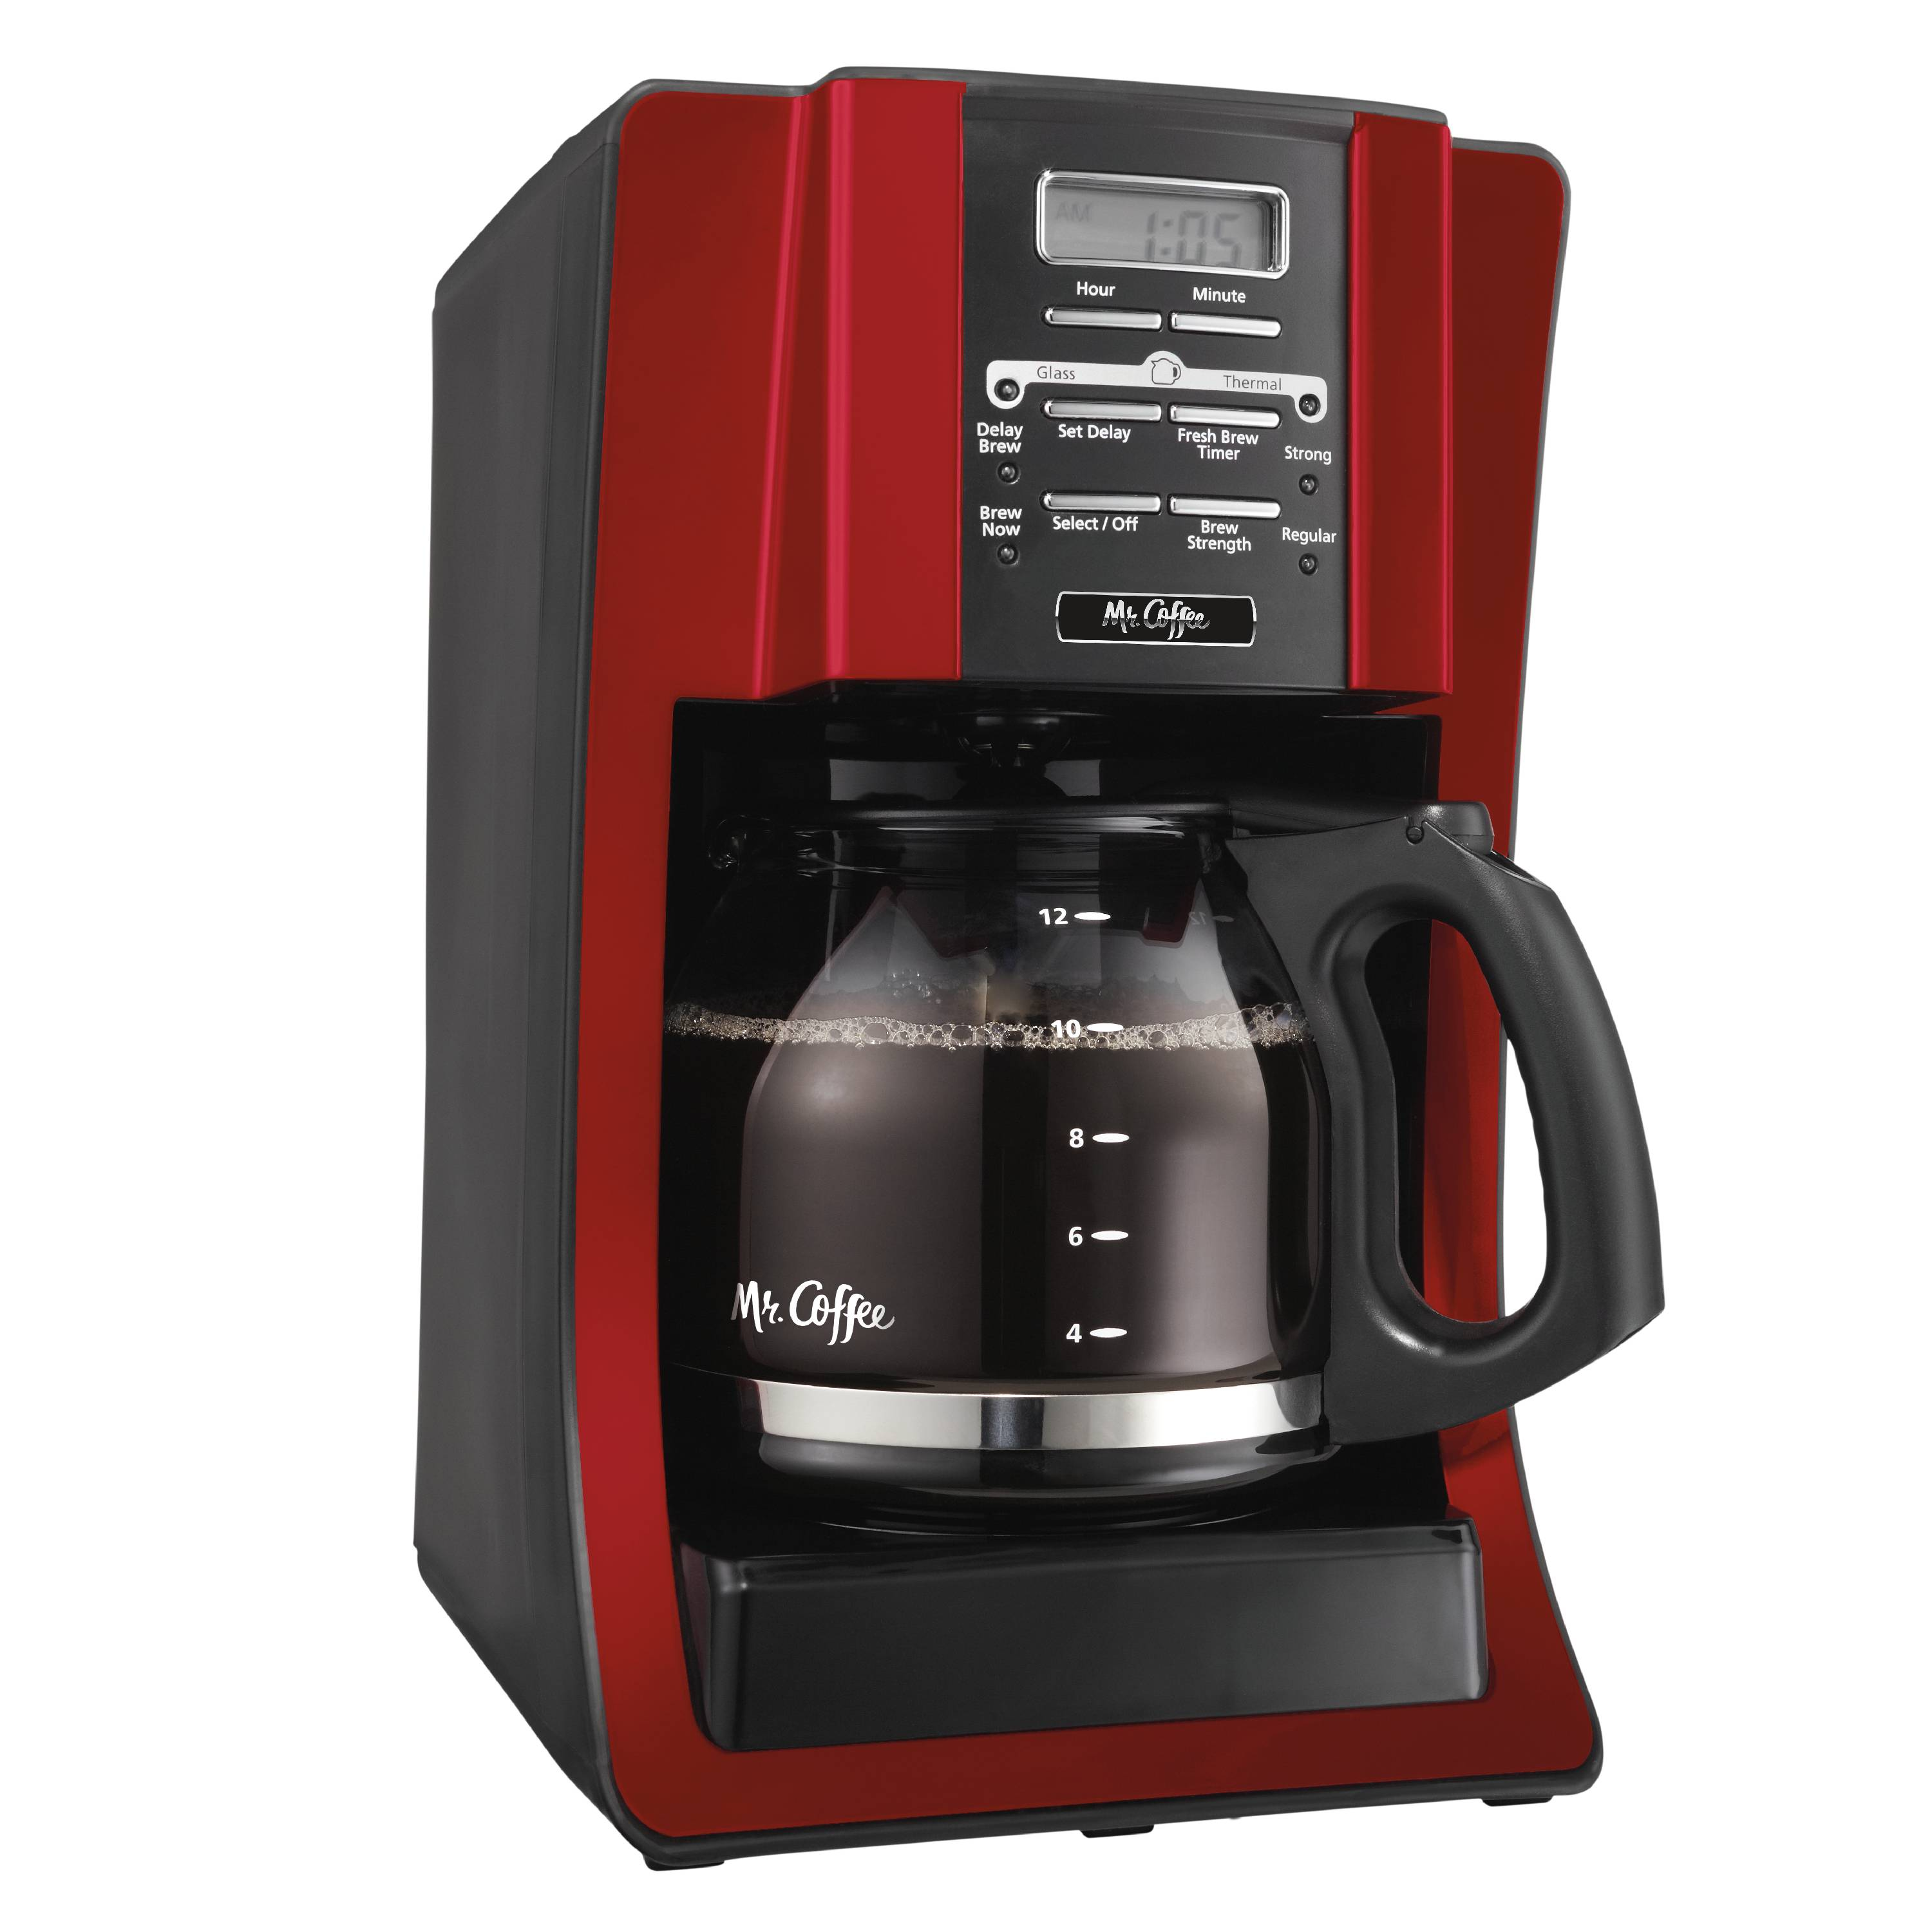 Mr. Coffee Advanced Brew 12-Cup Programmable Coffee Maker, Red (BVMC-SJX36GT)